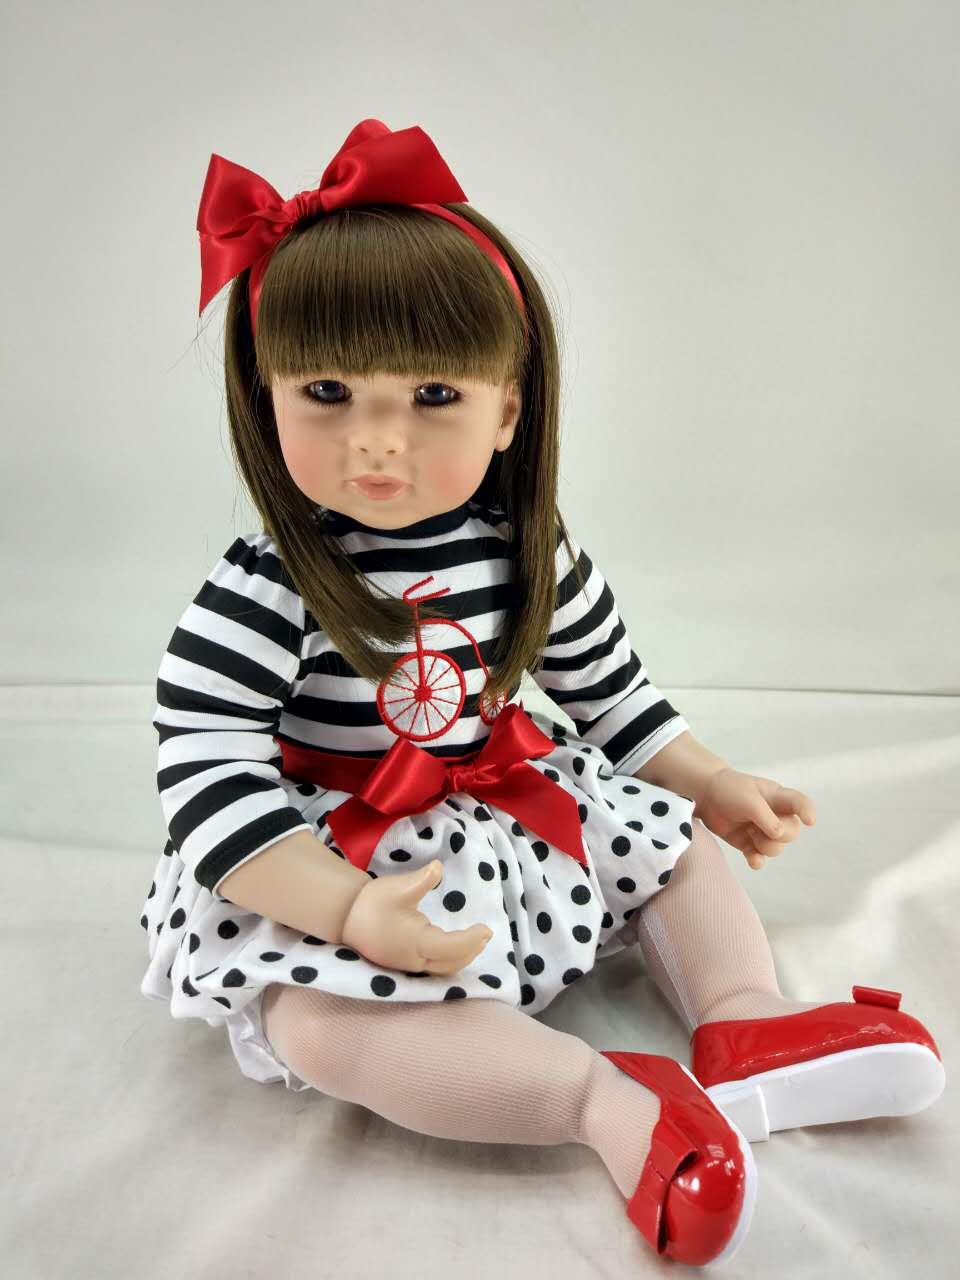 50cm Silicone Reborn Baby Girl Doll Toys Vinyl Princess Toddler Doll Girls Brinquedos Lovely Child Kids Toy Birthday Gift 50cm silicone reborn babies doll toys lifelike vinyl lovely princess toddler doll kids birthday gift child girl brinquedos